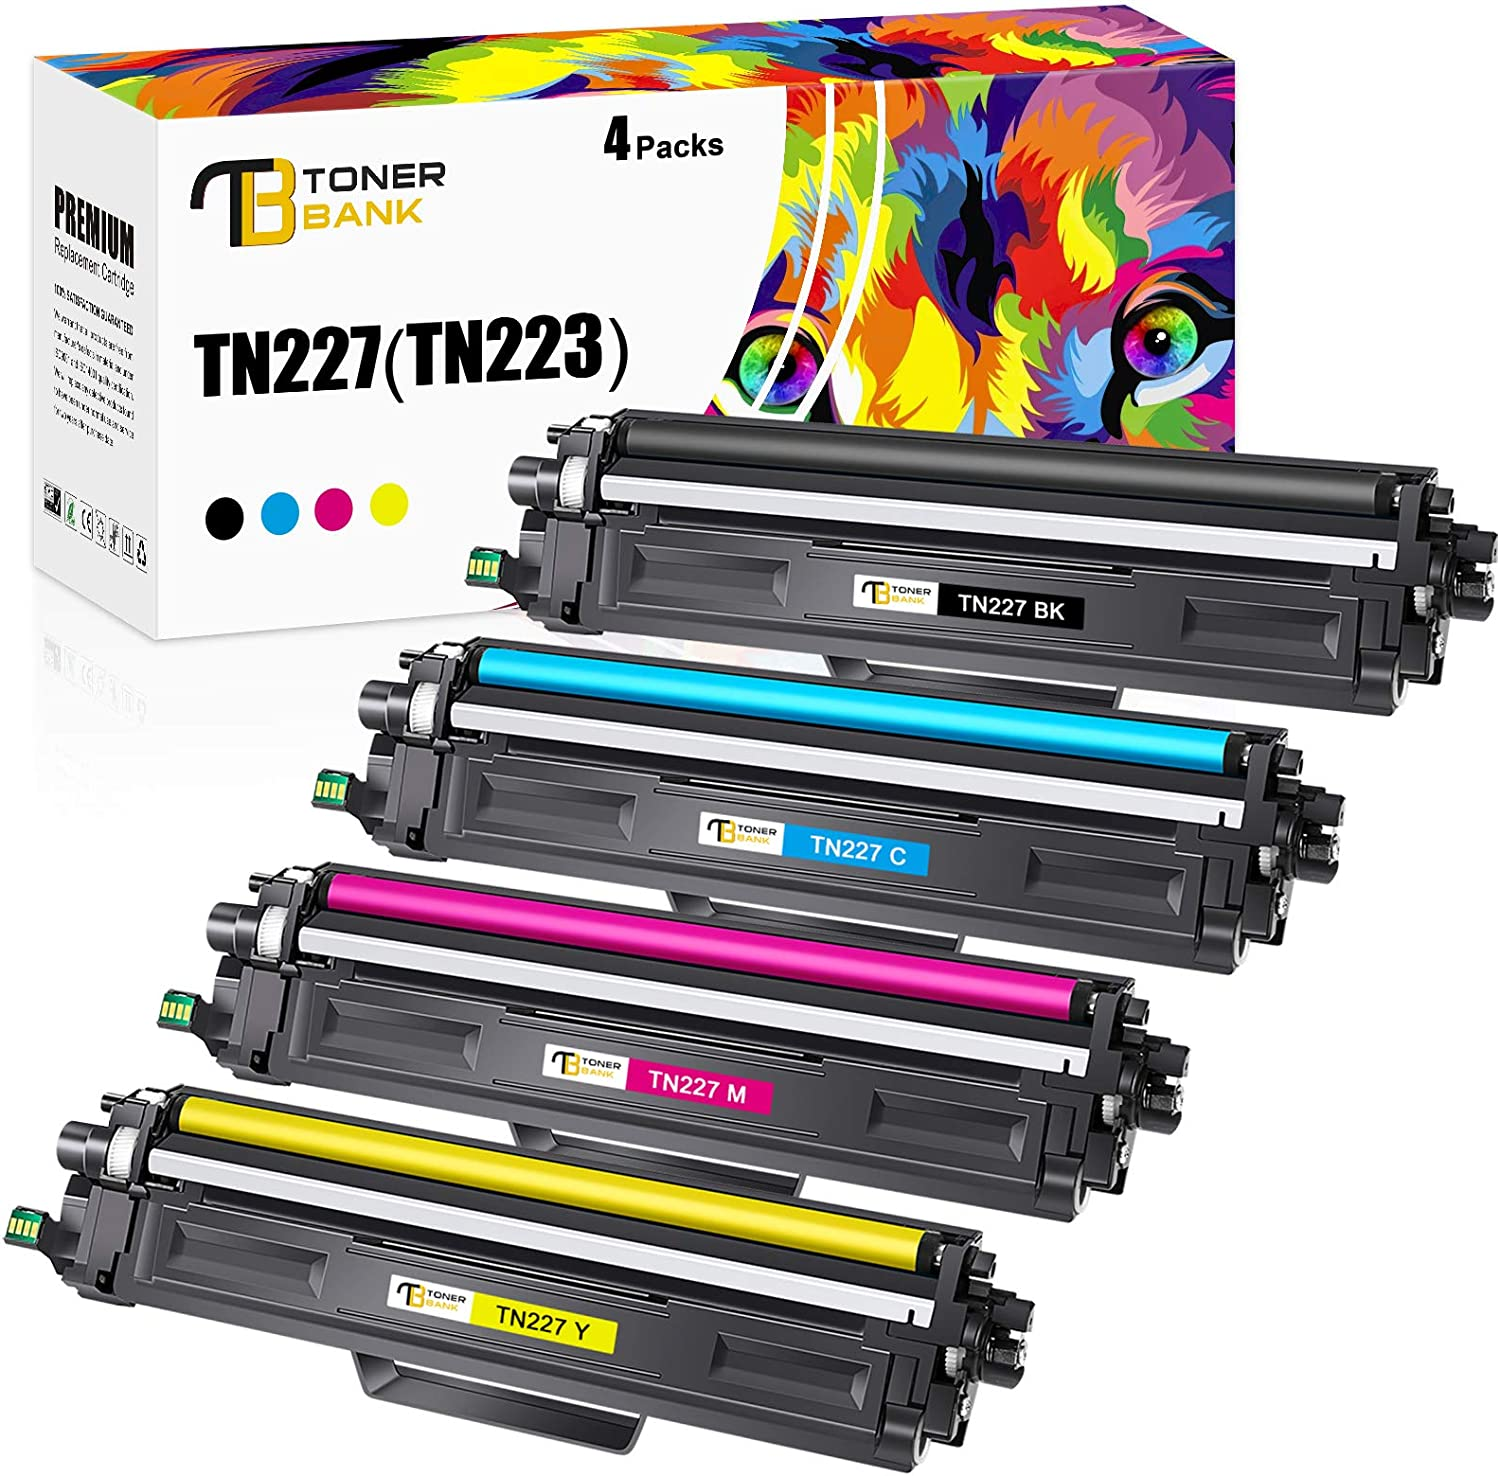 L9200CDW; MFC L9550CDW On-Site Laser Compatible Toner Replacement for Brother TN339BK Works with: HL L9200CDWT Black